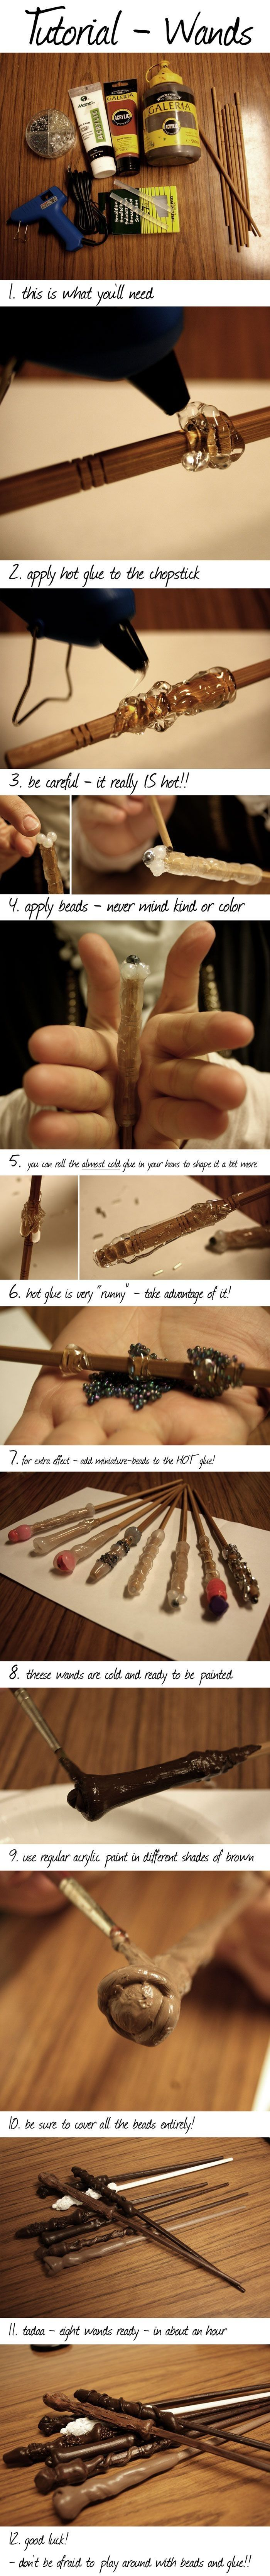 DIY wands                                                                                                                                                                                 Plus